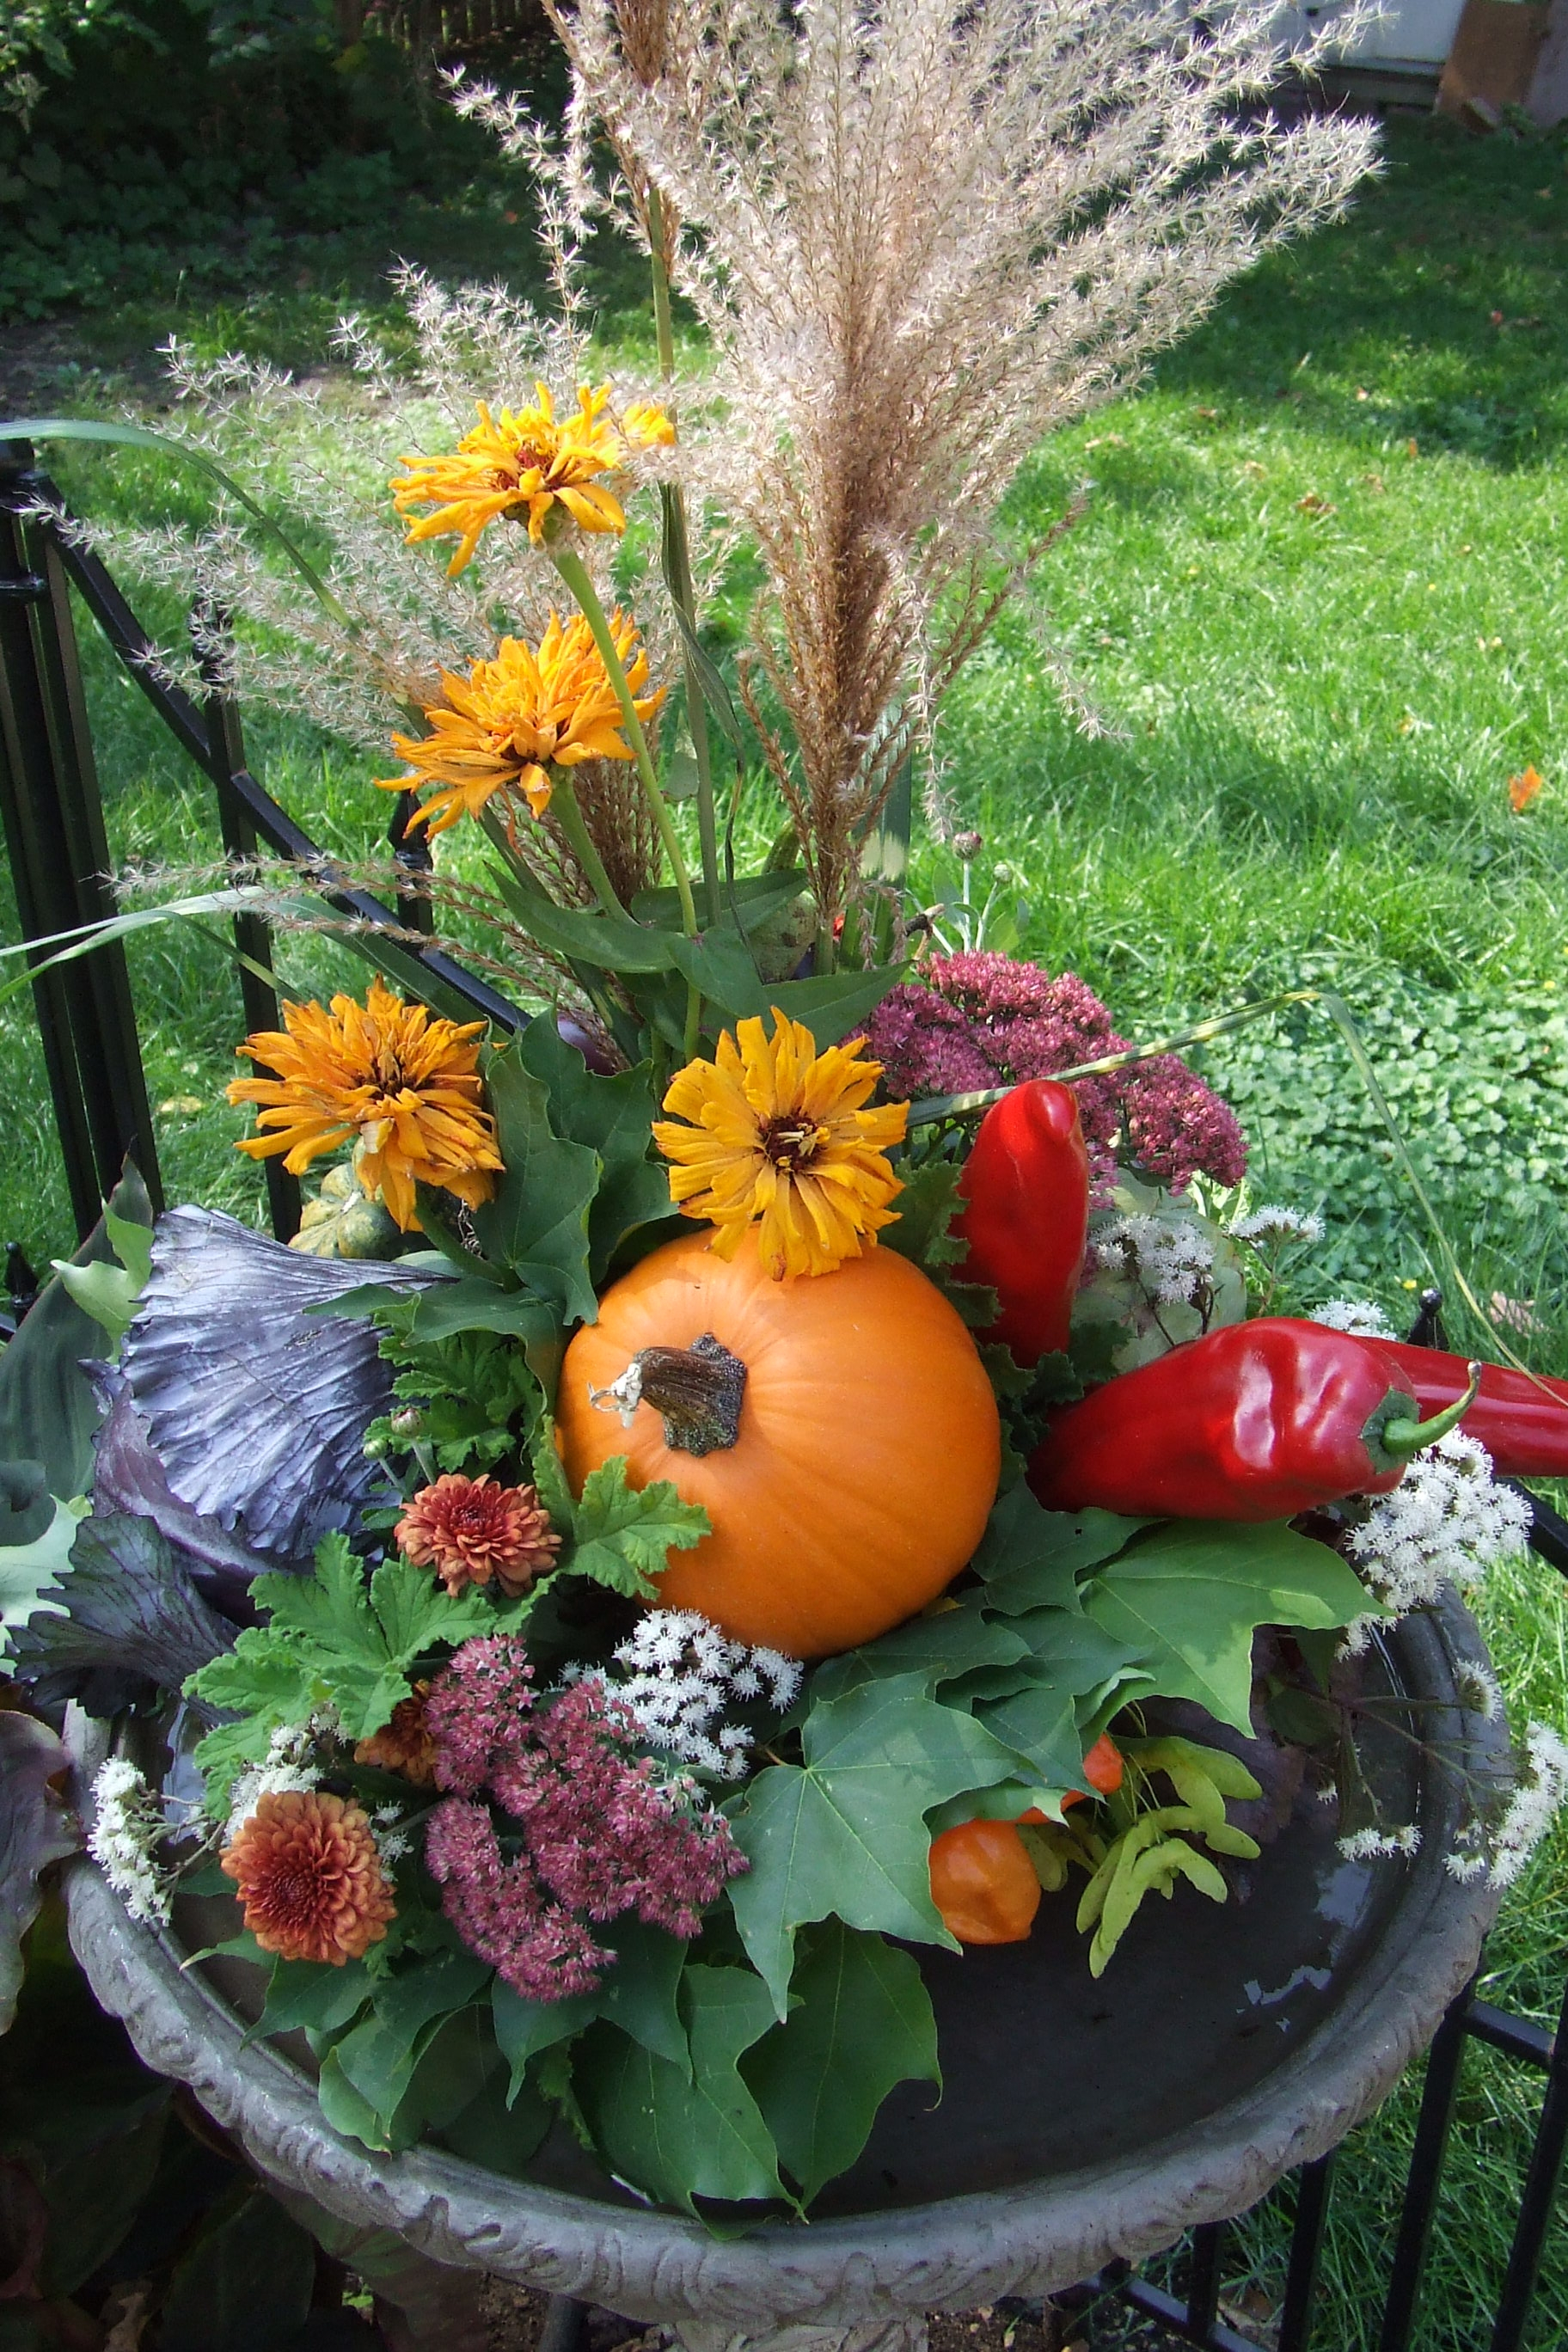 Vegetables are beautiful tim latimer quilts etc for Pretty vegetable garden designs